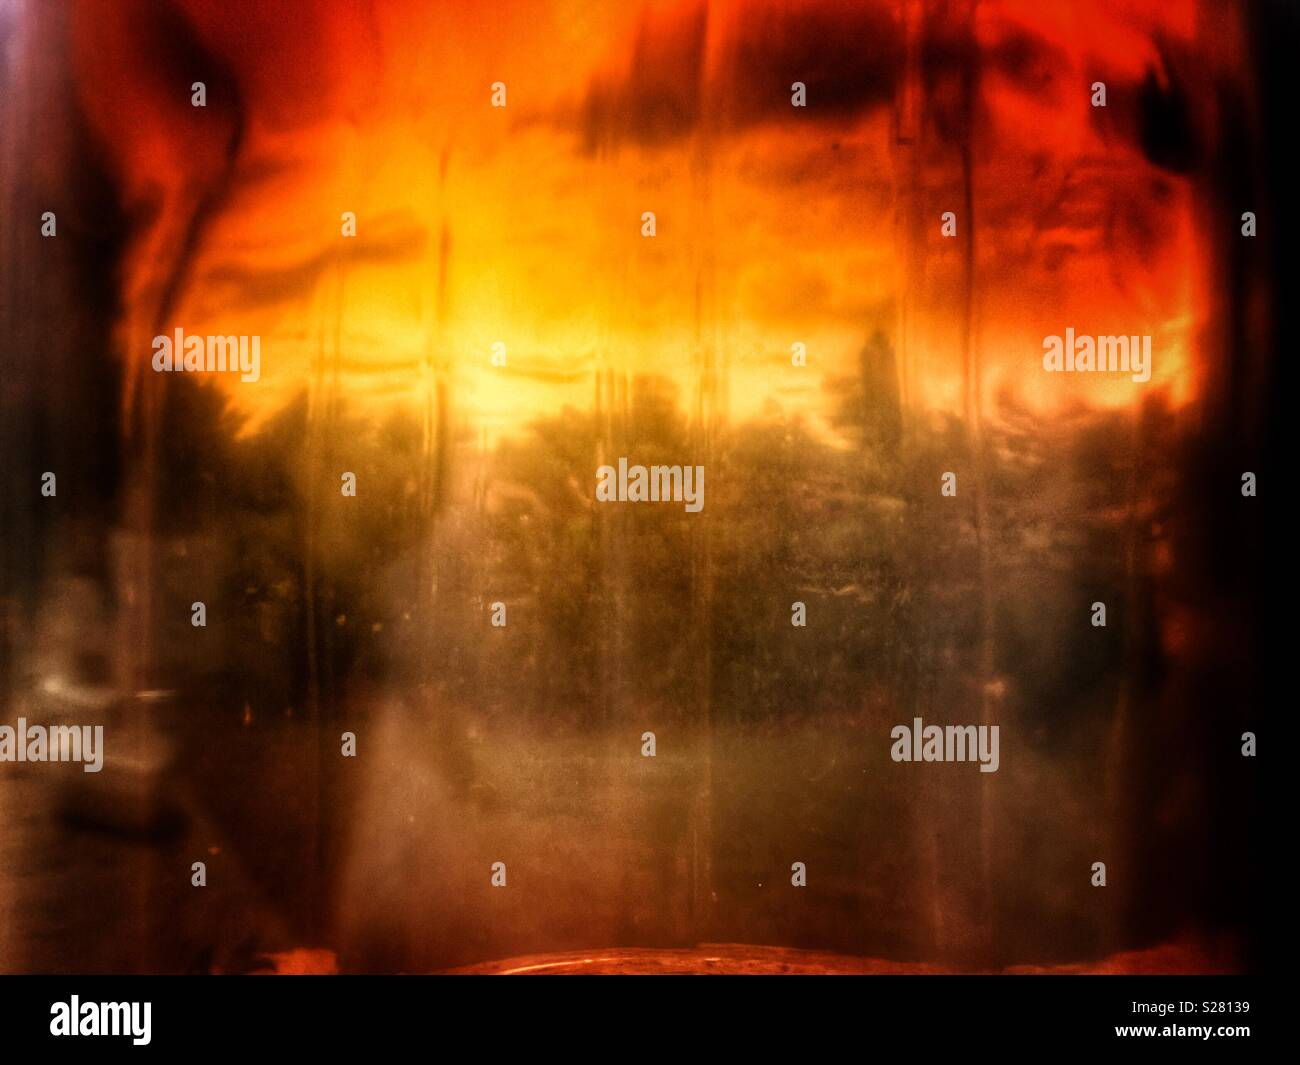 Apocalypse or view of trees through vintage brown bottle - Stock Image